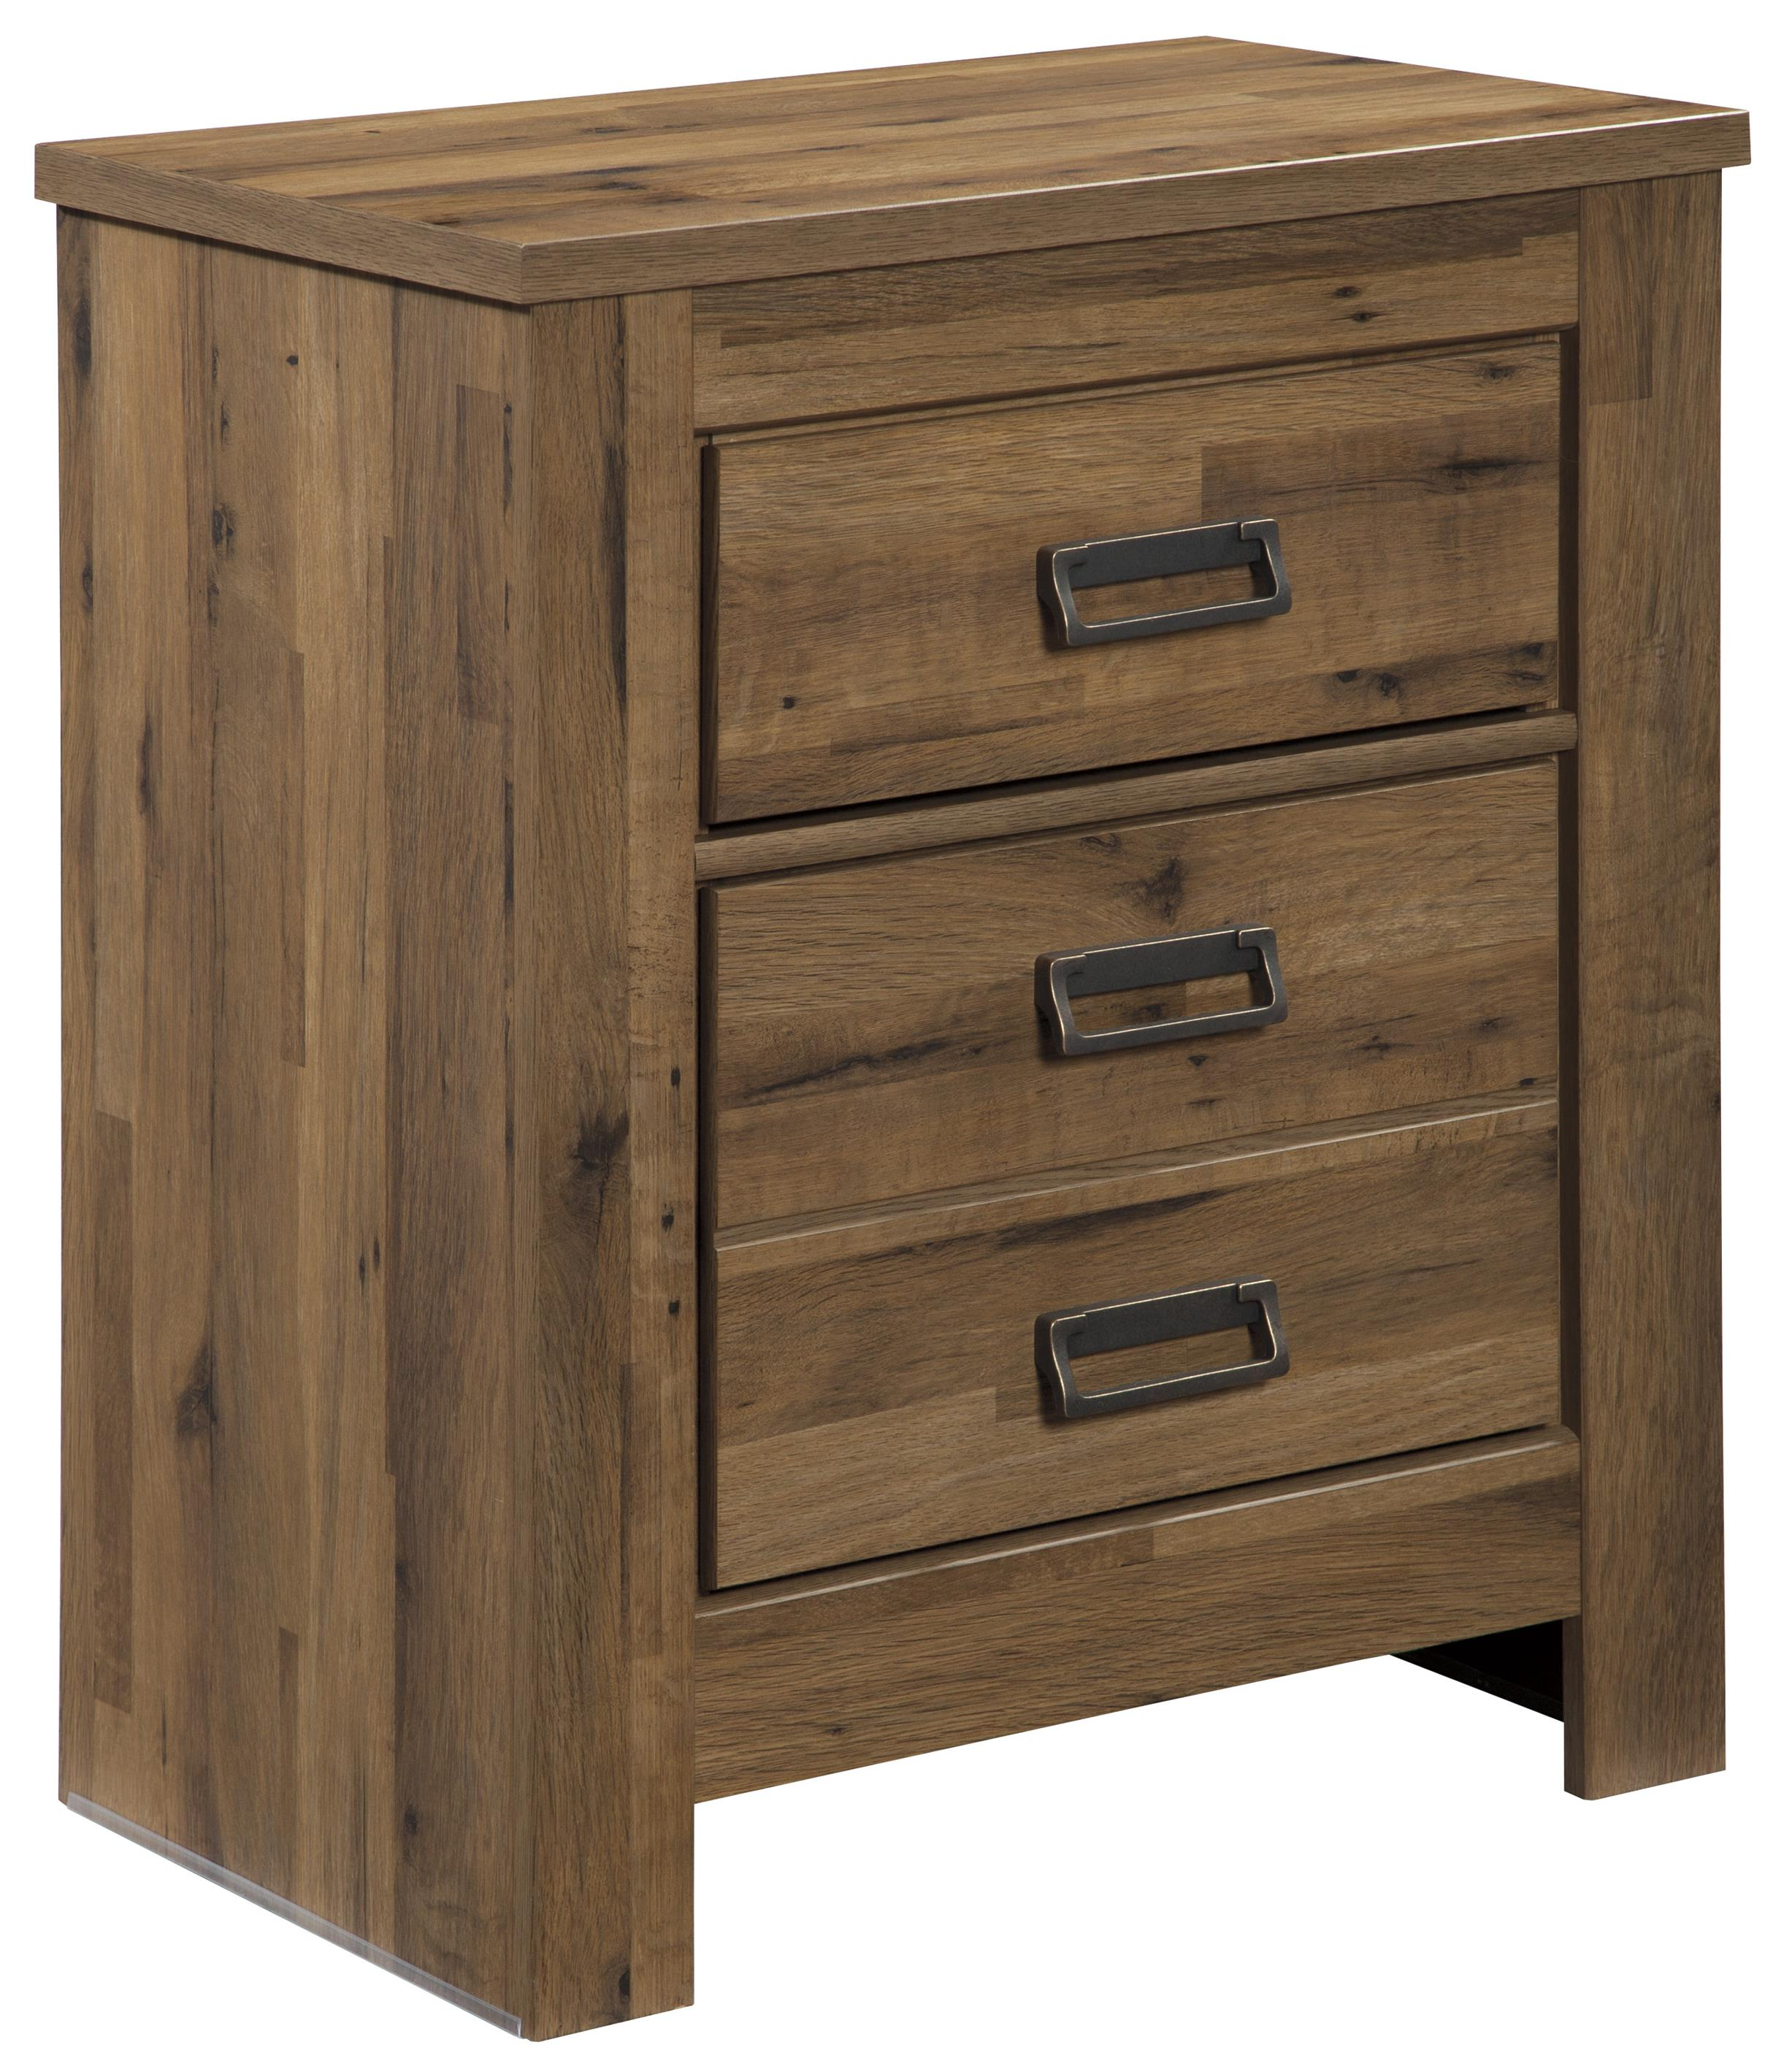 Signature Design by Ashley Simon Two Drawer Night Stand - Item Number: B369-92